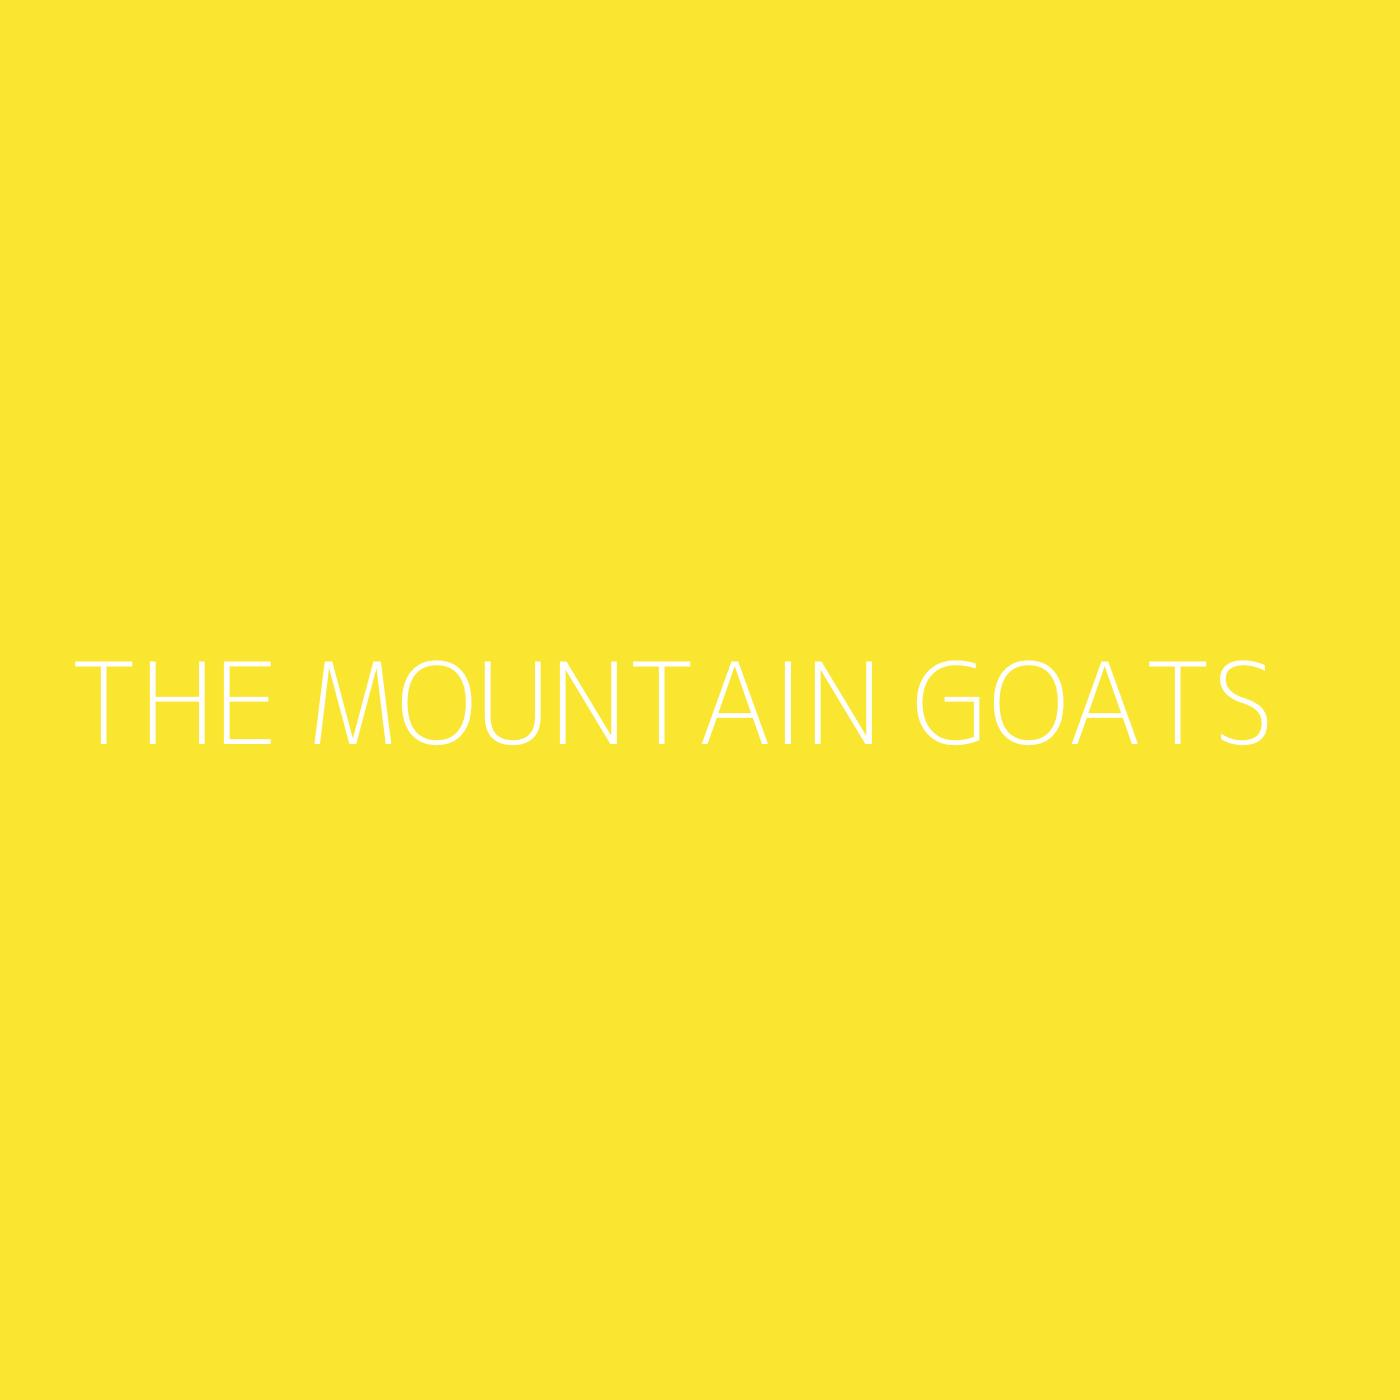 The Mountain Goats Playlist Artwork